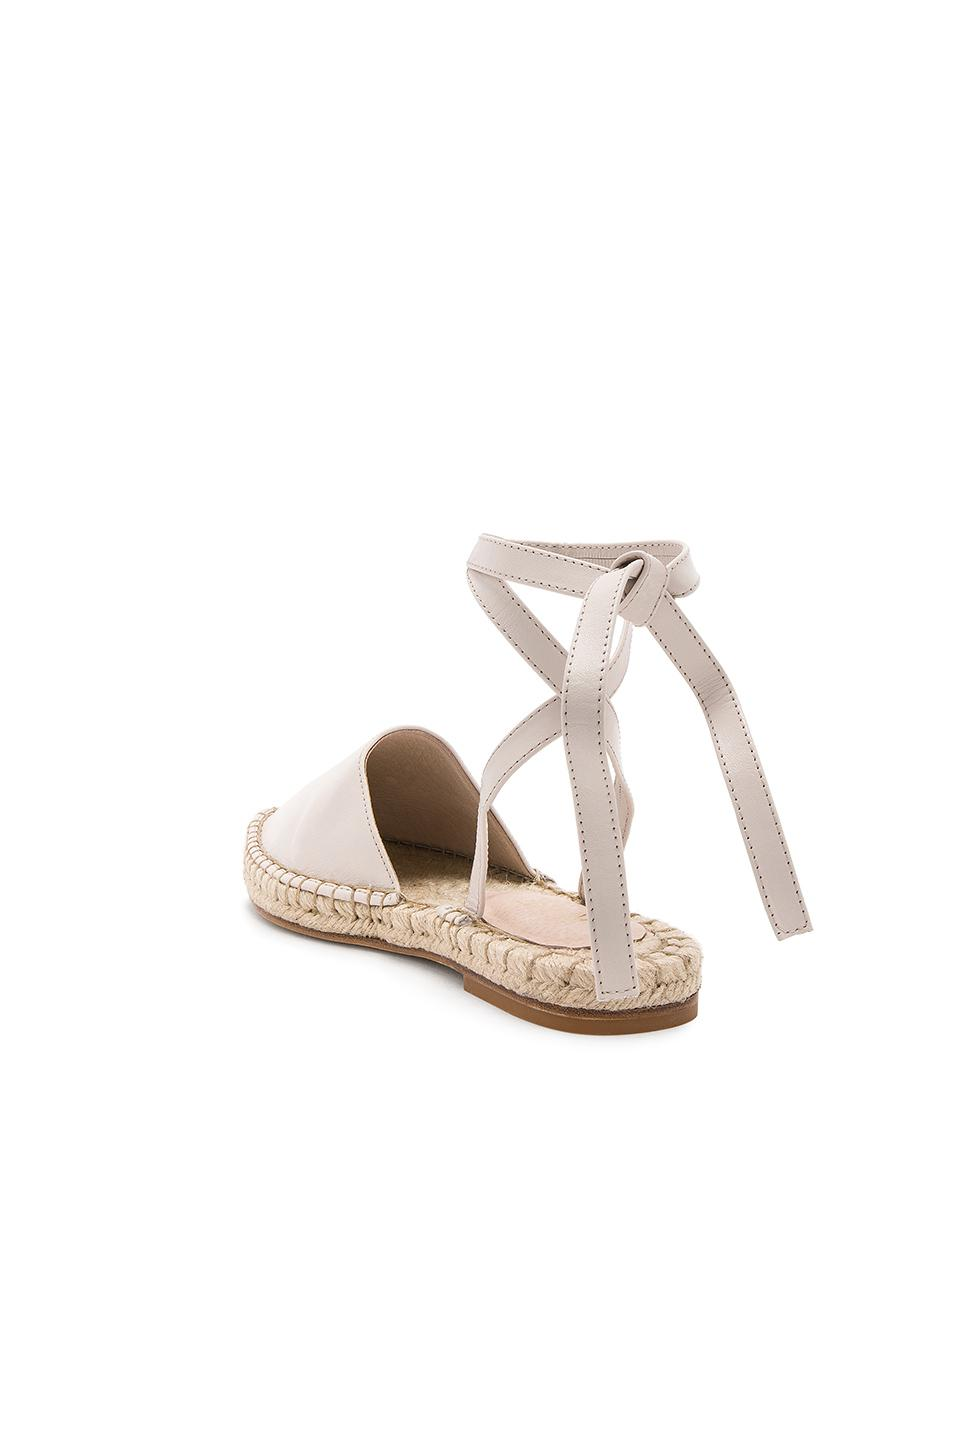 bfd67ff91589 Lyst - RAYE Dexter Espadrille in Natural